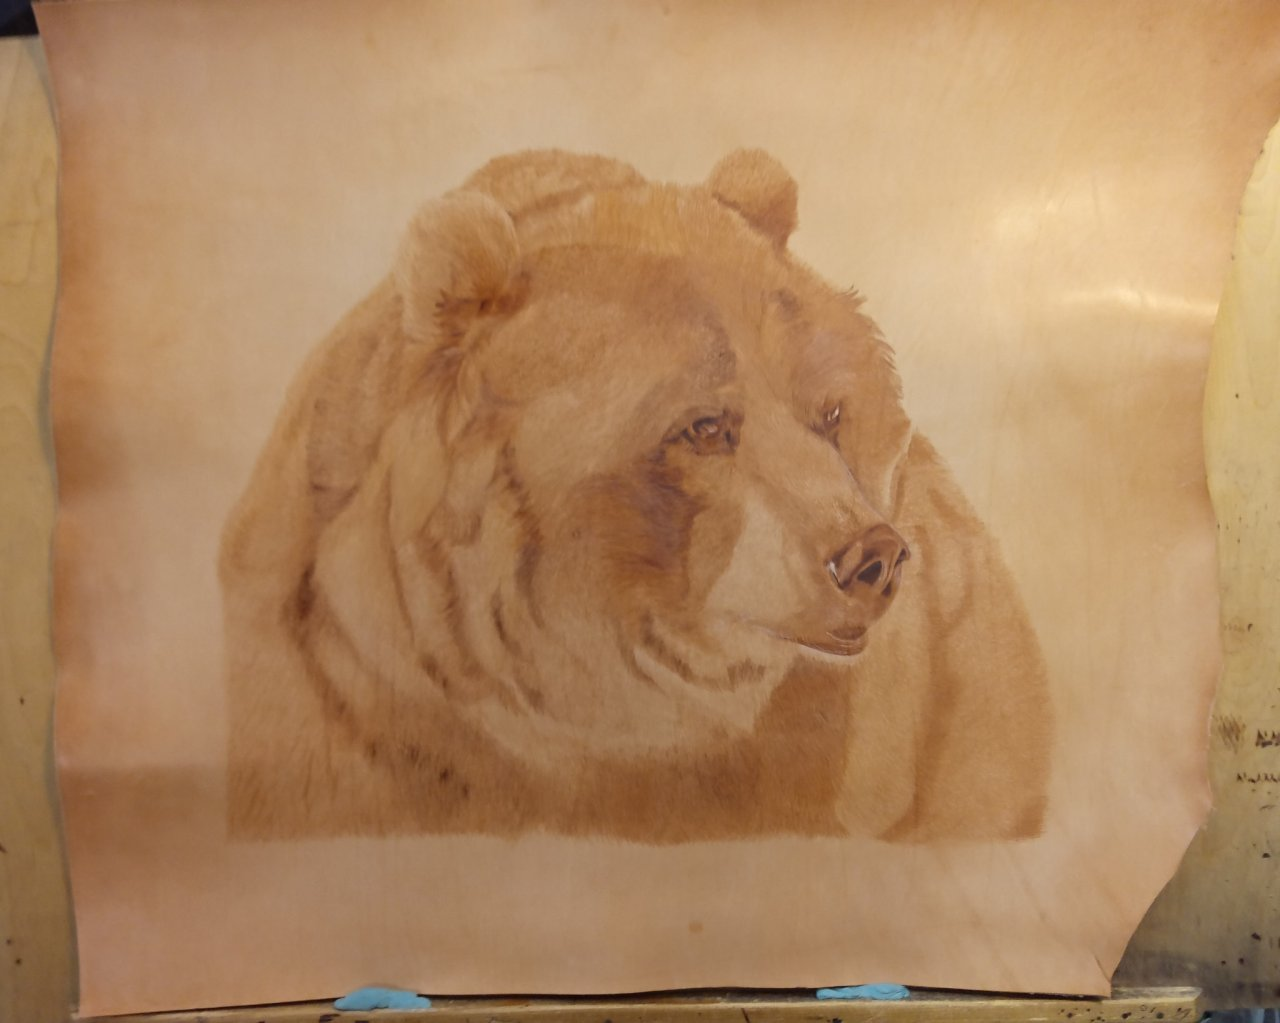 The Bear on leather